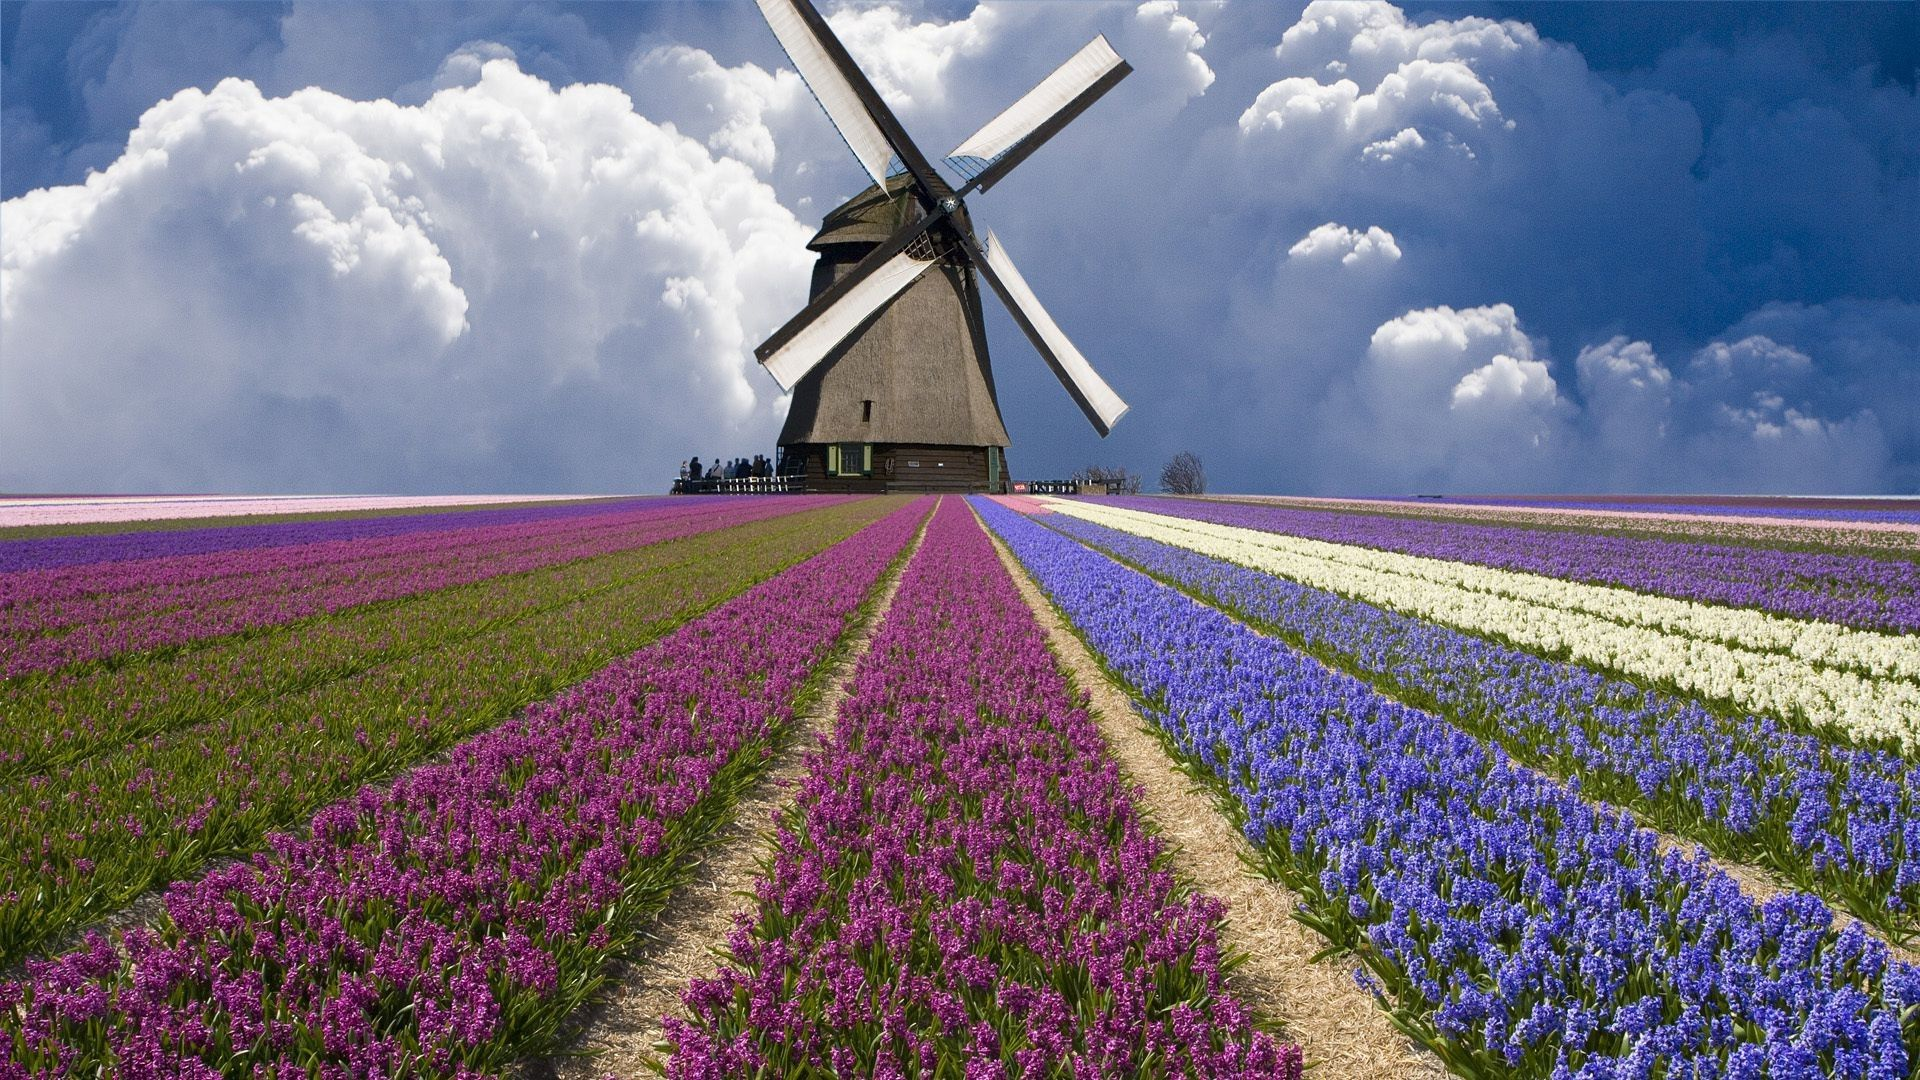 Explore Dutch Tulip Field Of Flowers and